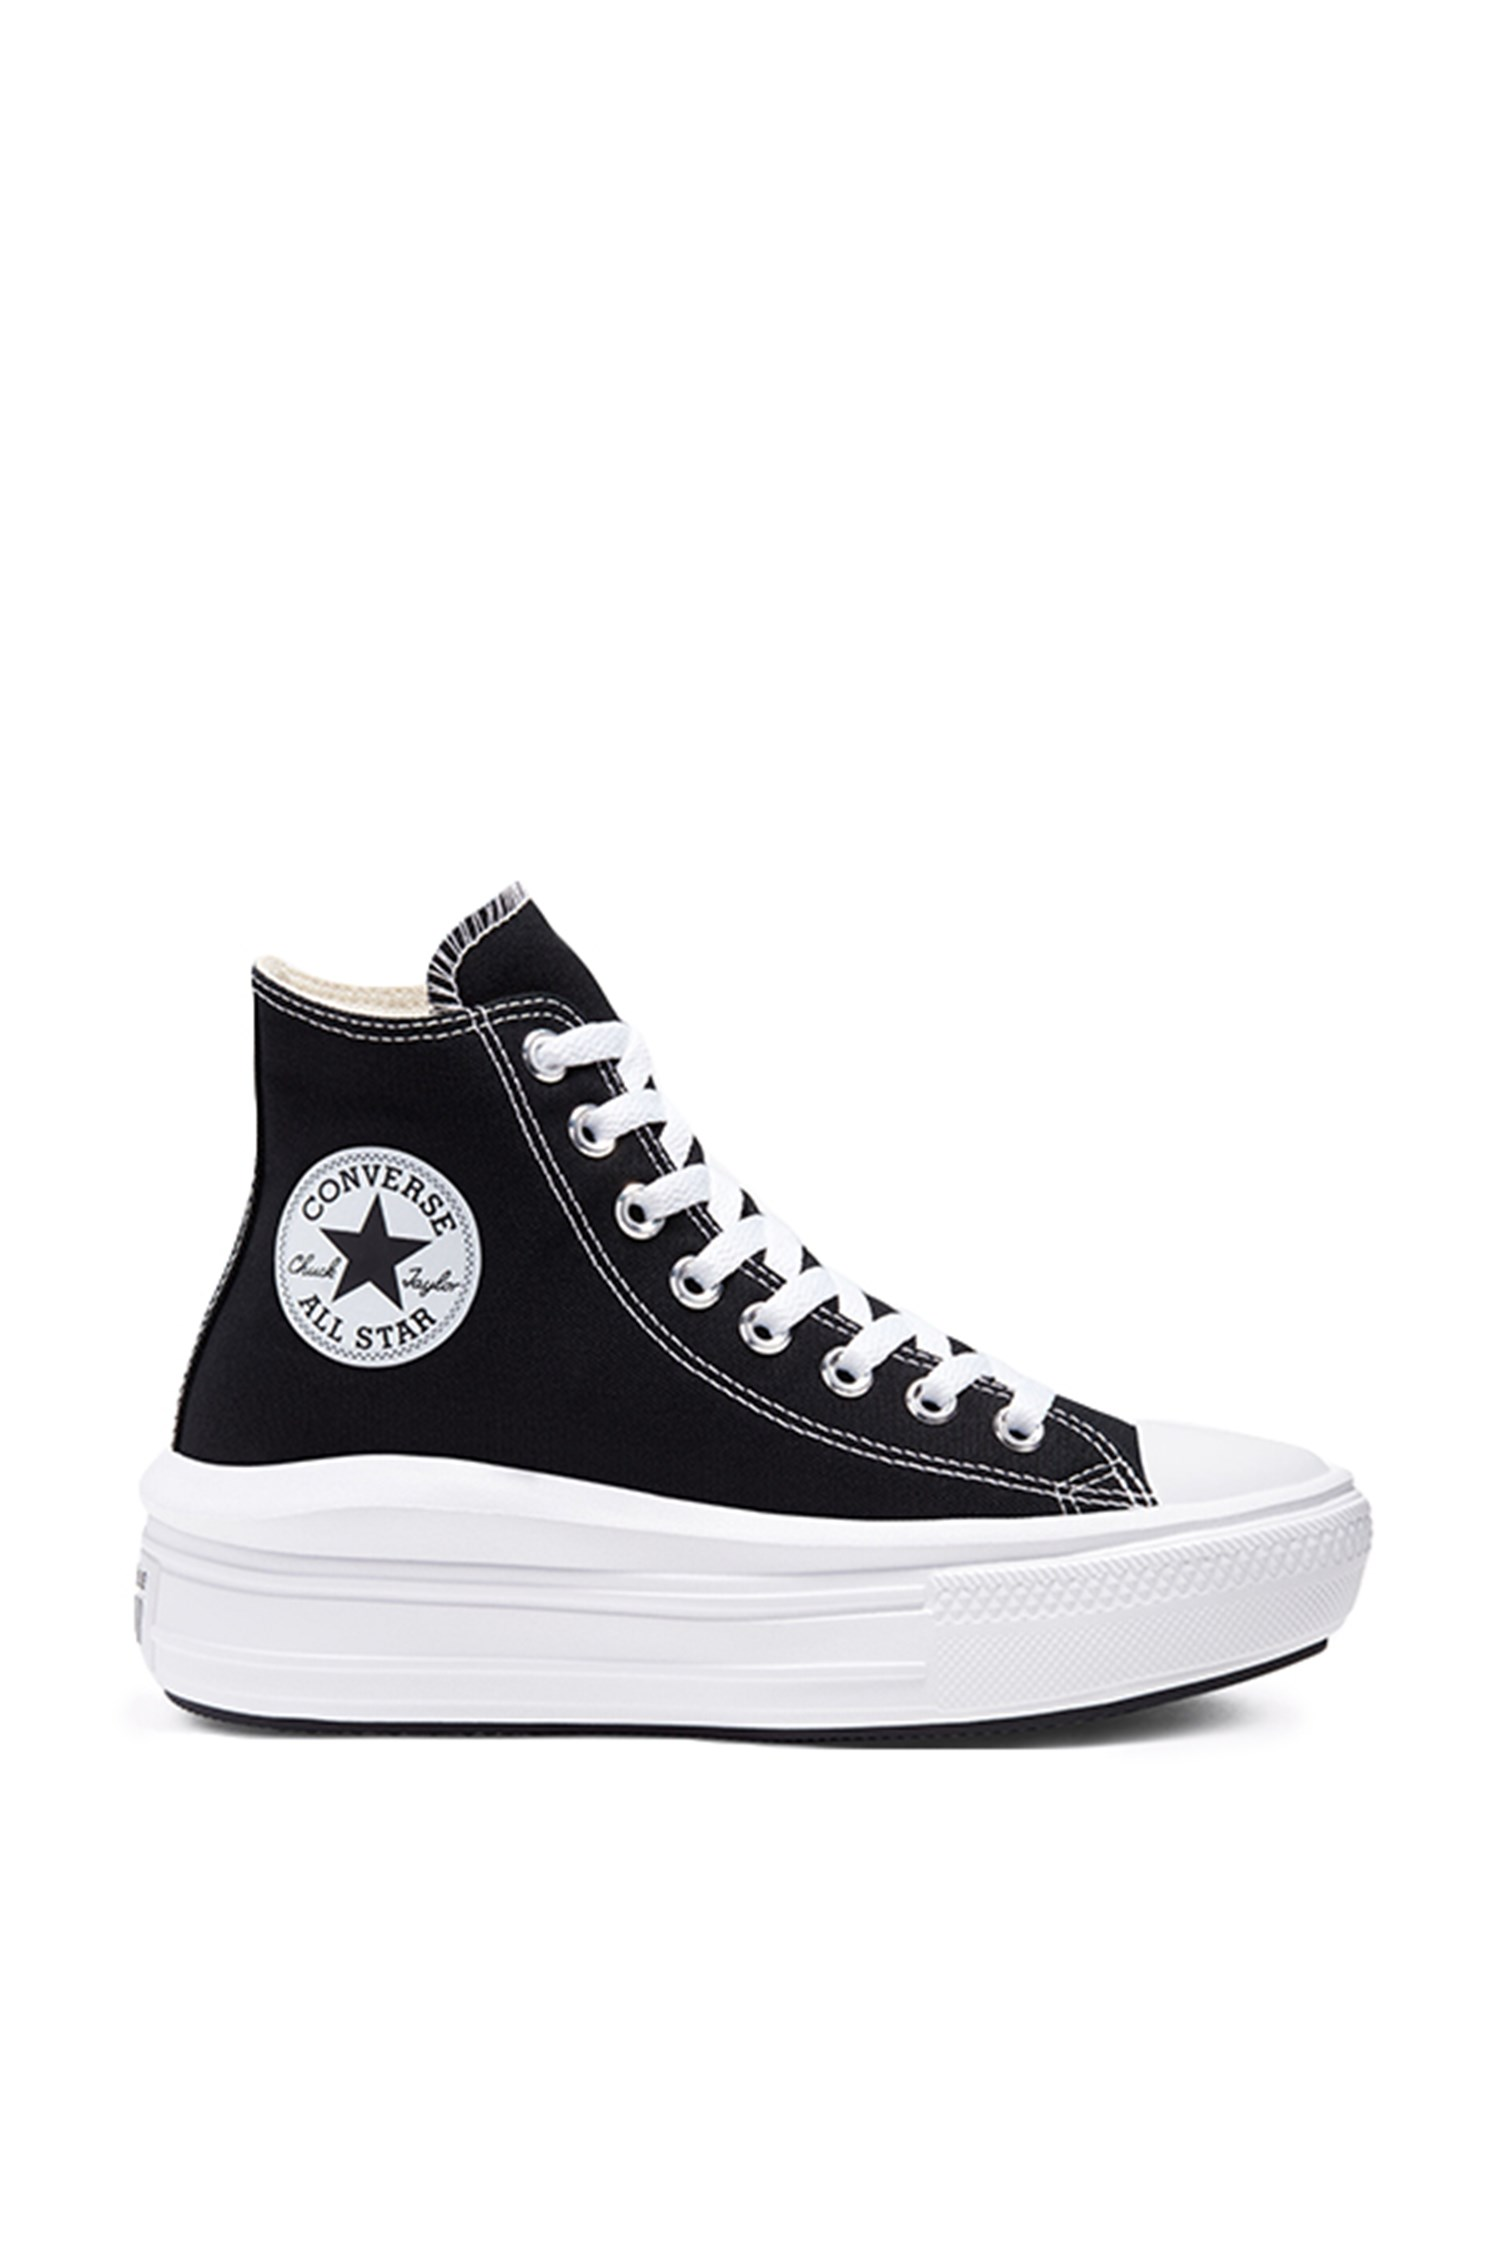 Converse Sneakers high Women Black / natural Ivory / white